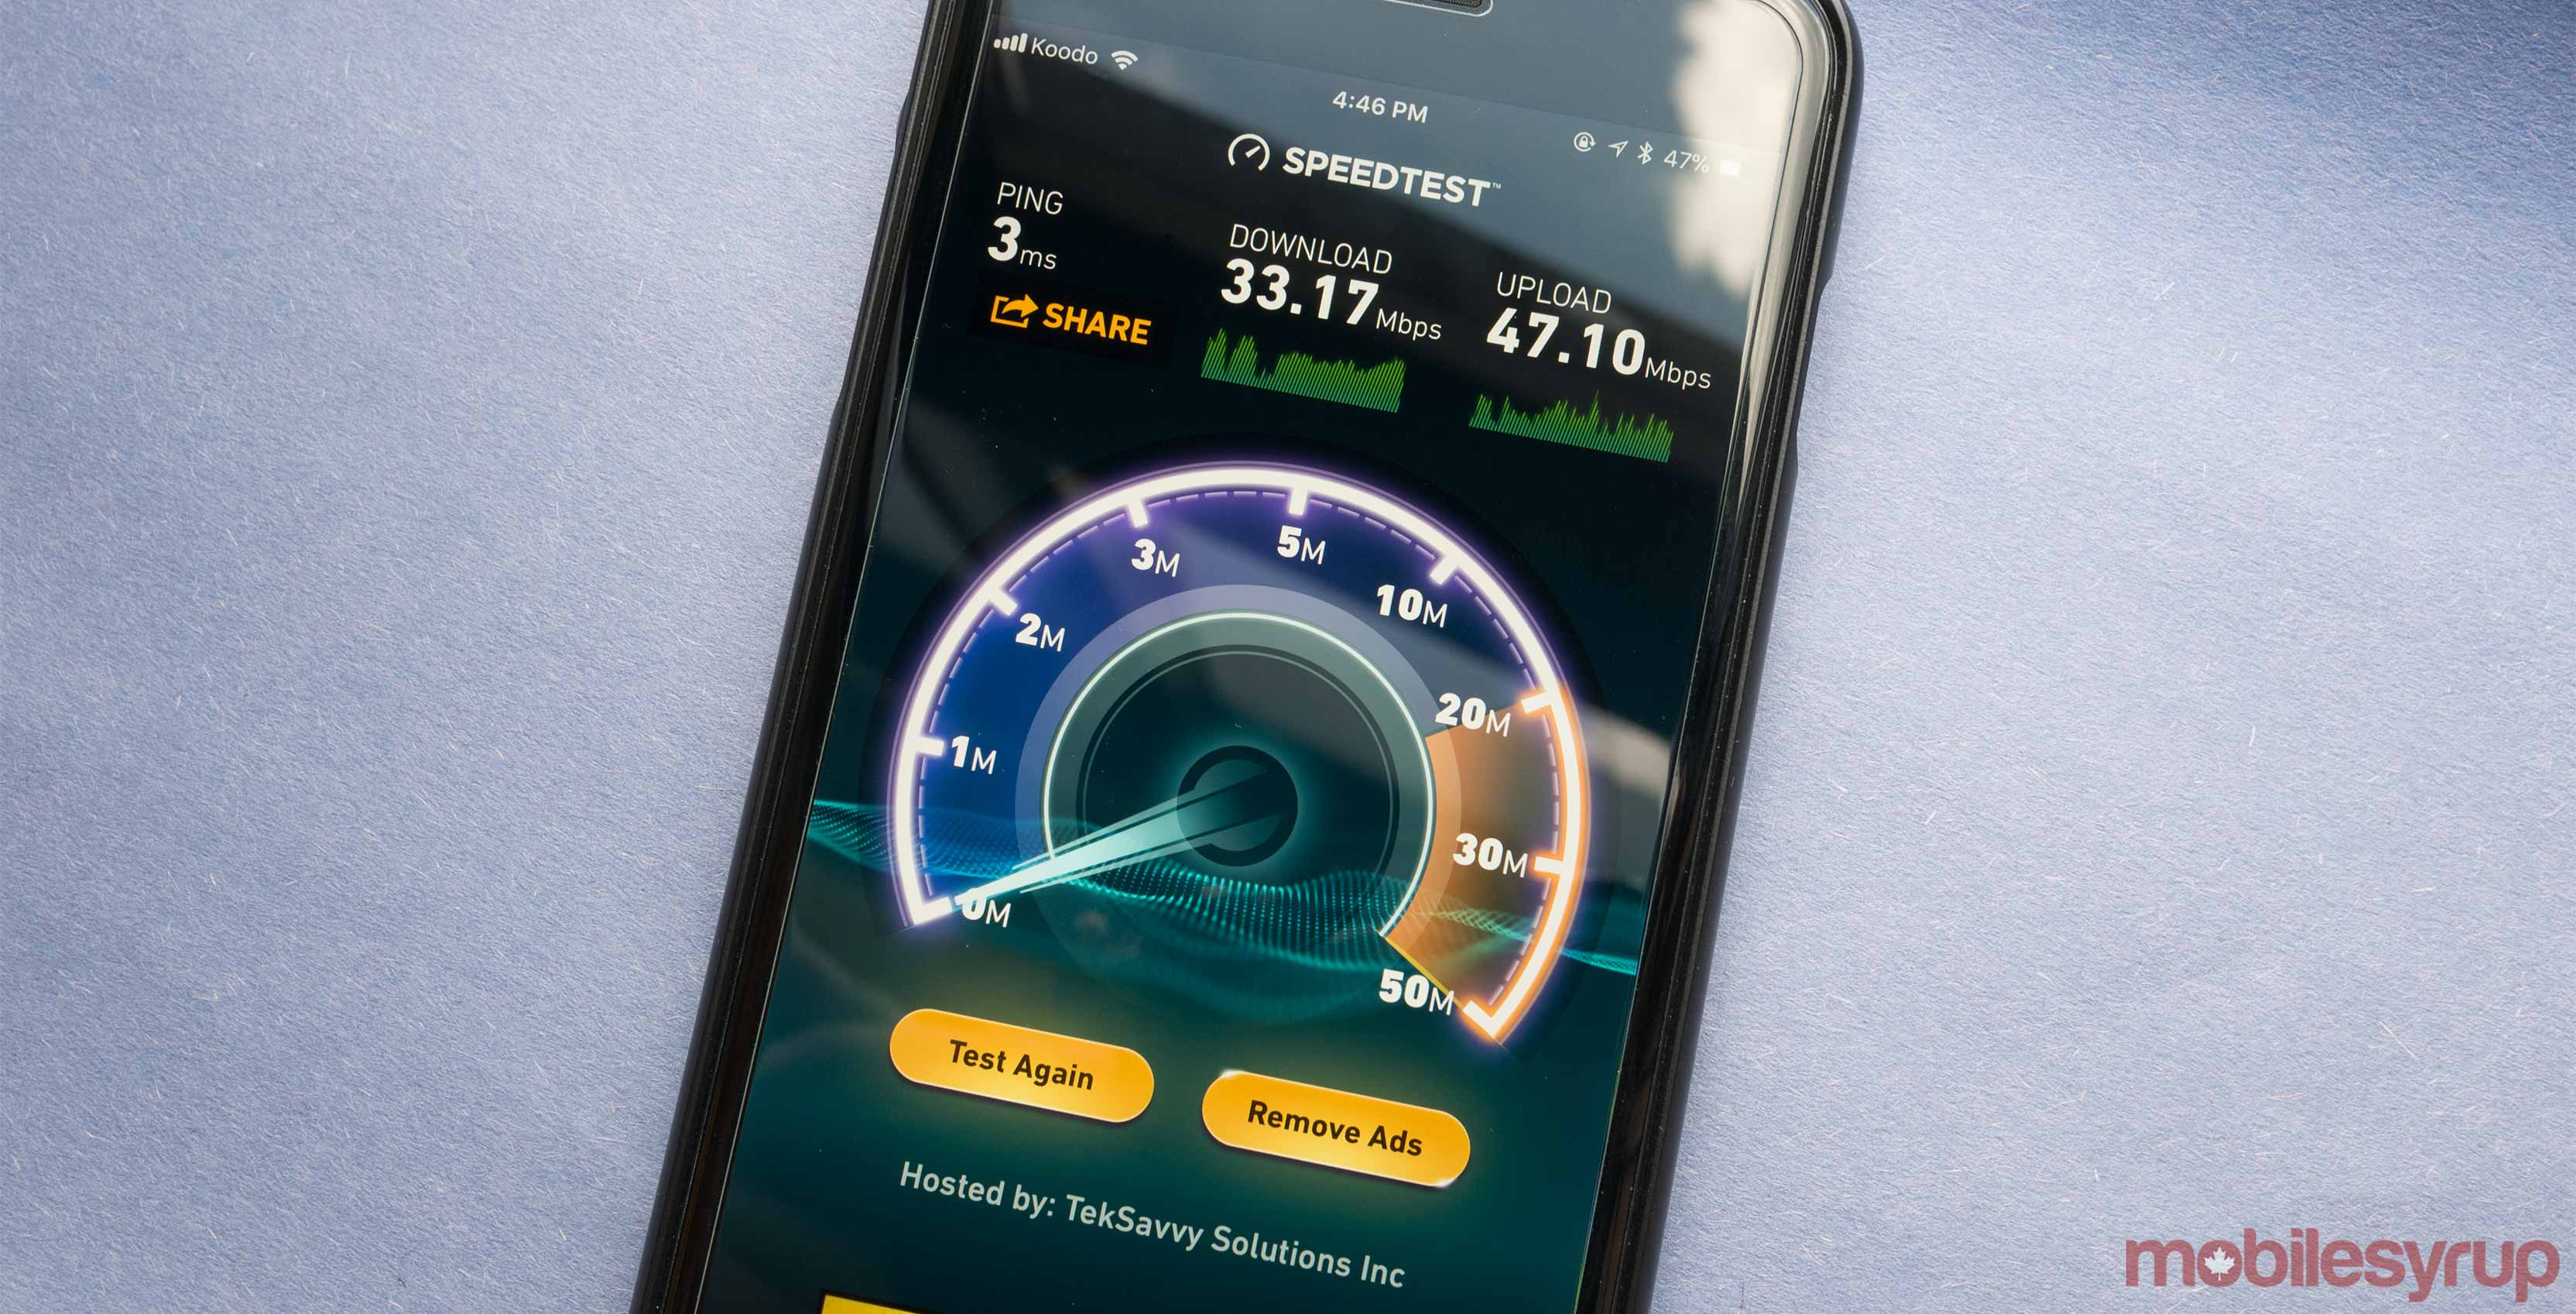 An image showing the results of a Speedtest